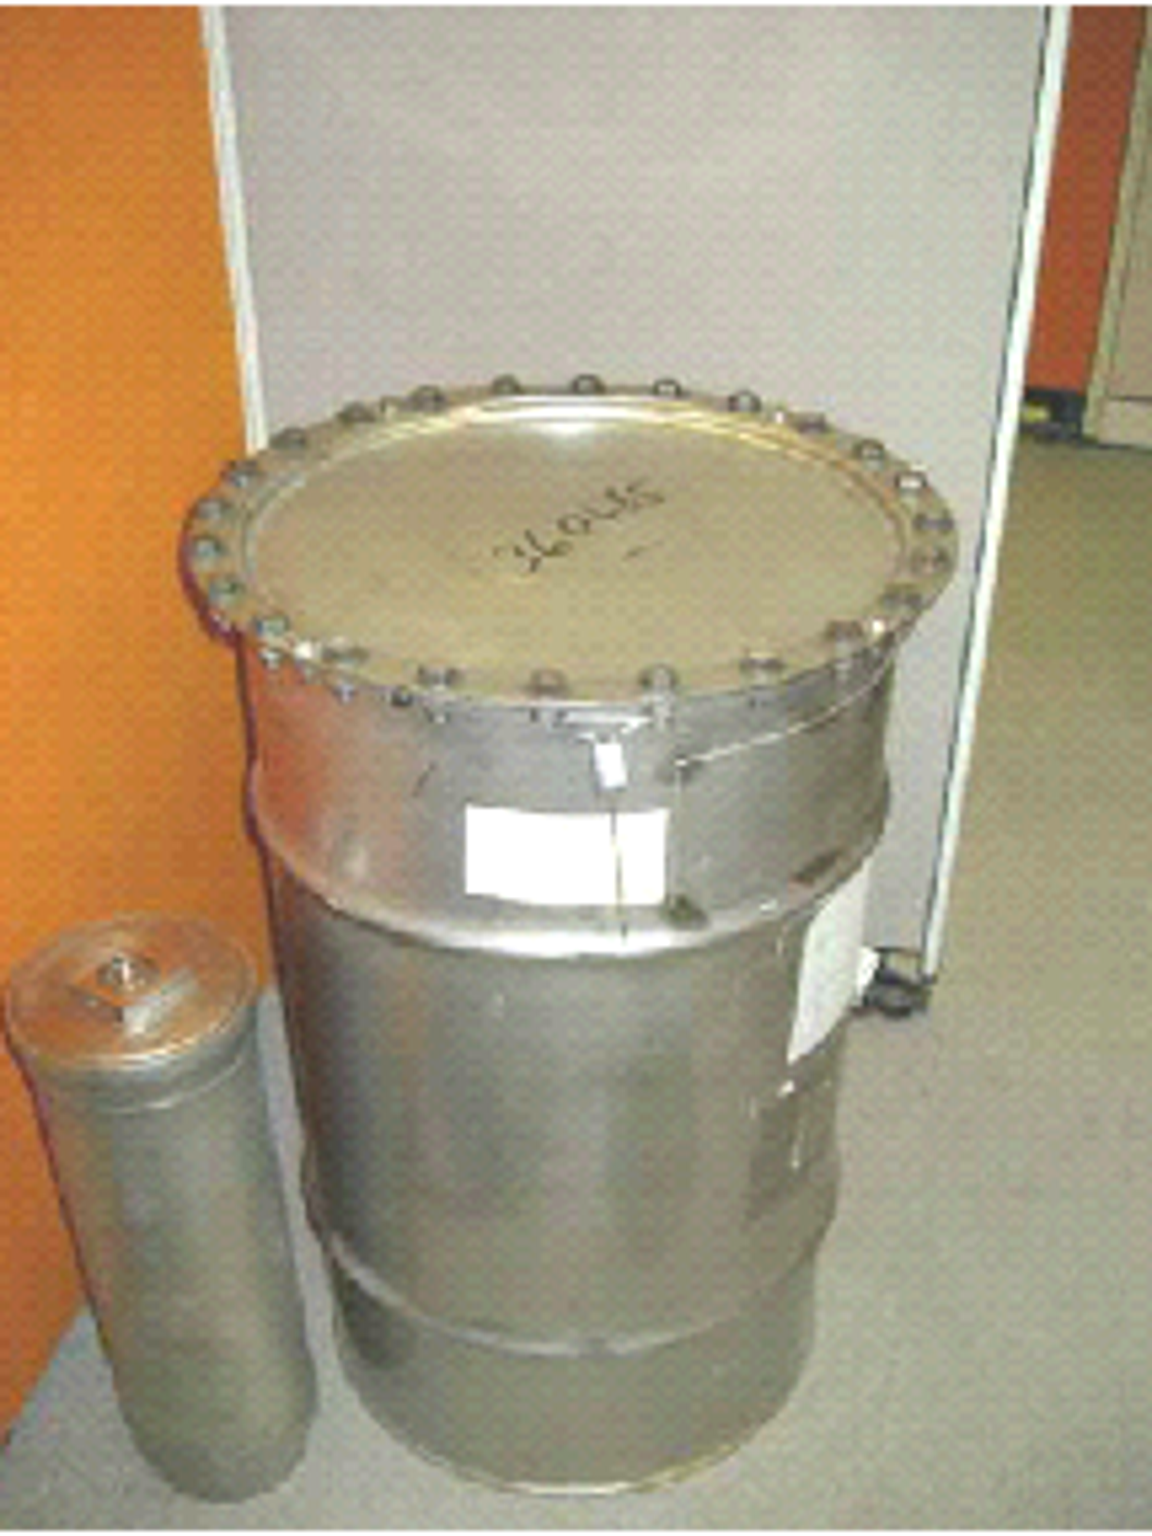 Containers used to ship and store plutonium like this